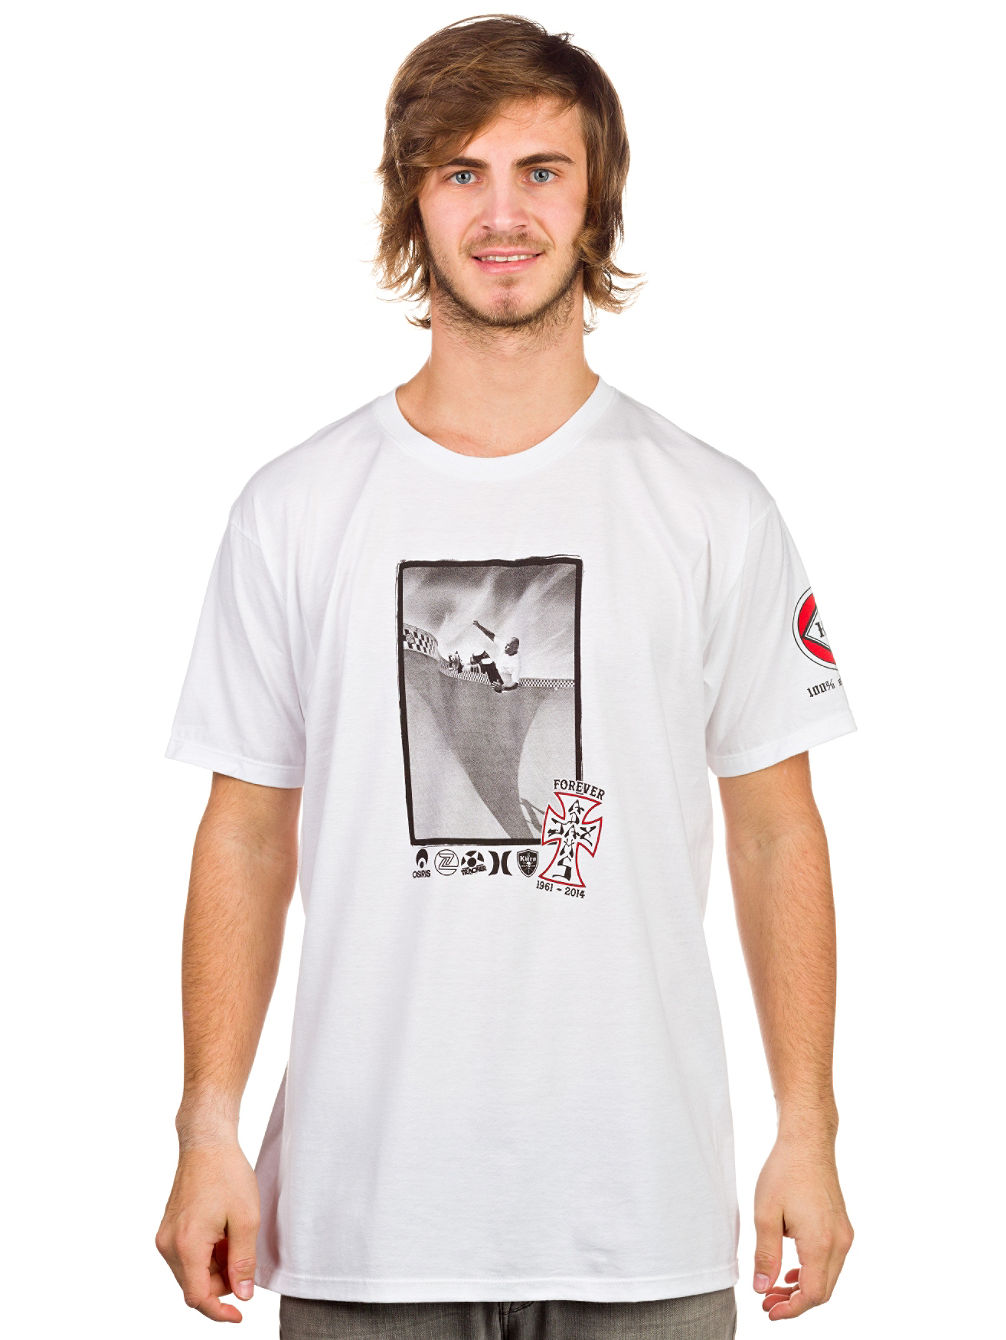 jay-adams-grind-t-shirt